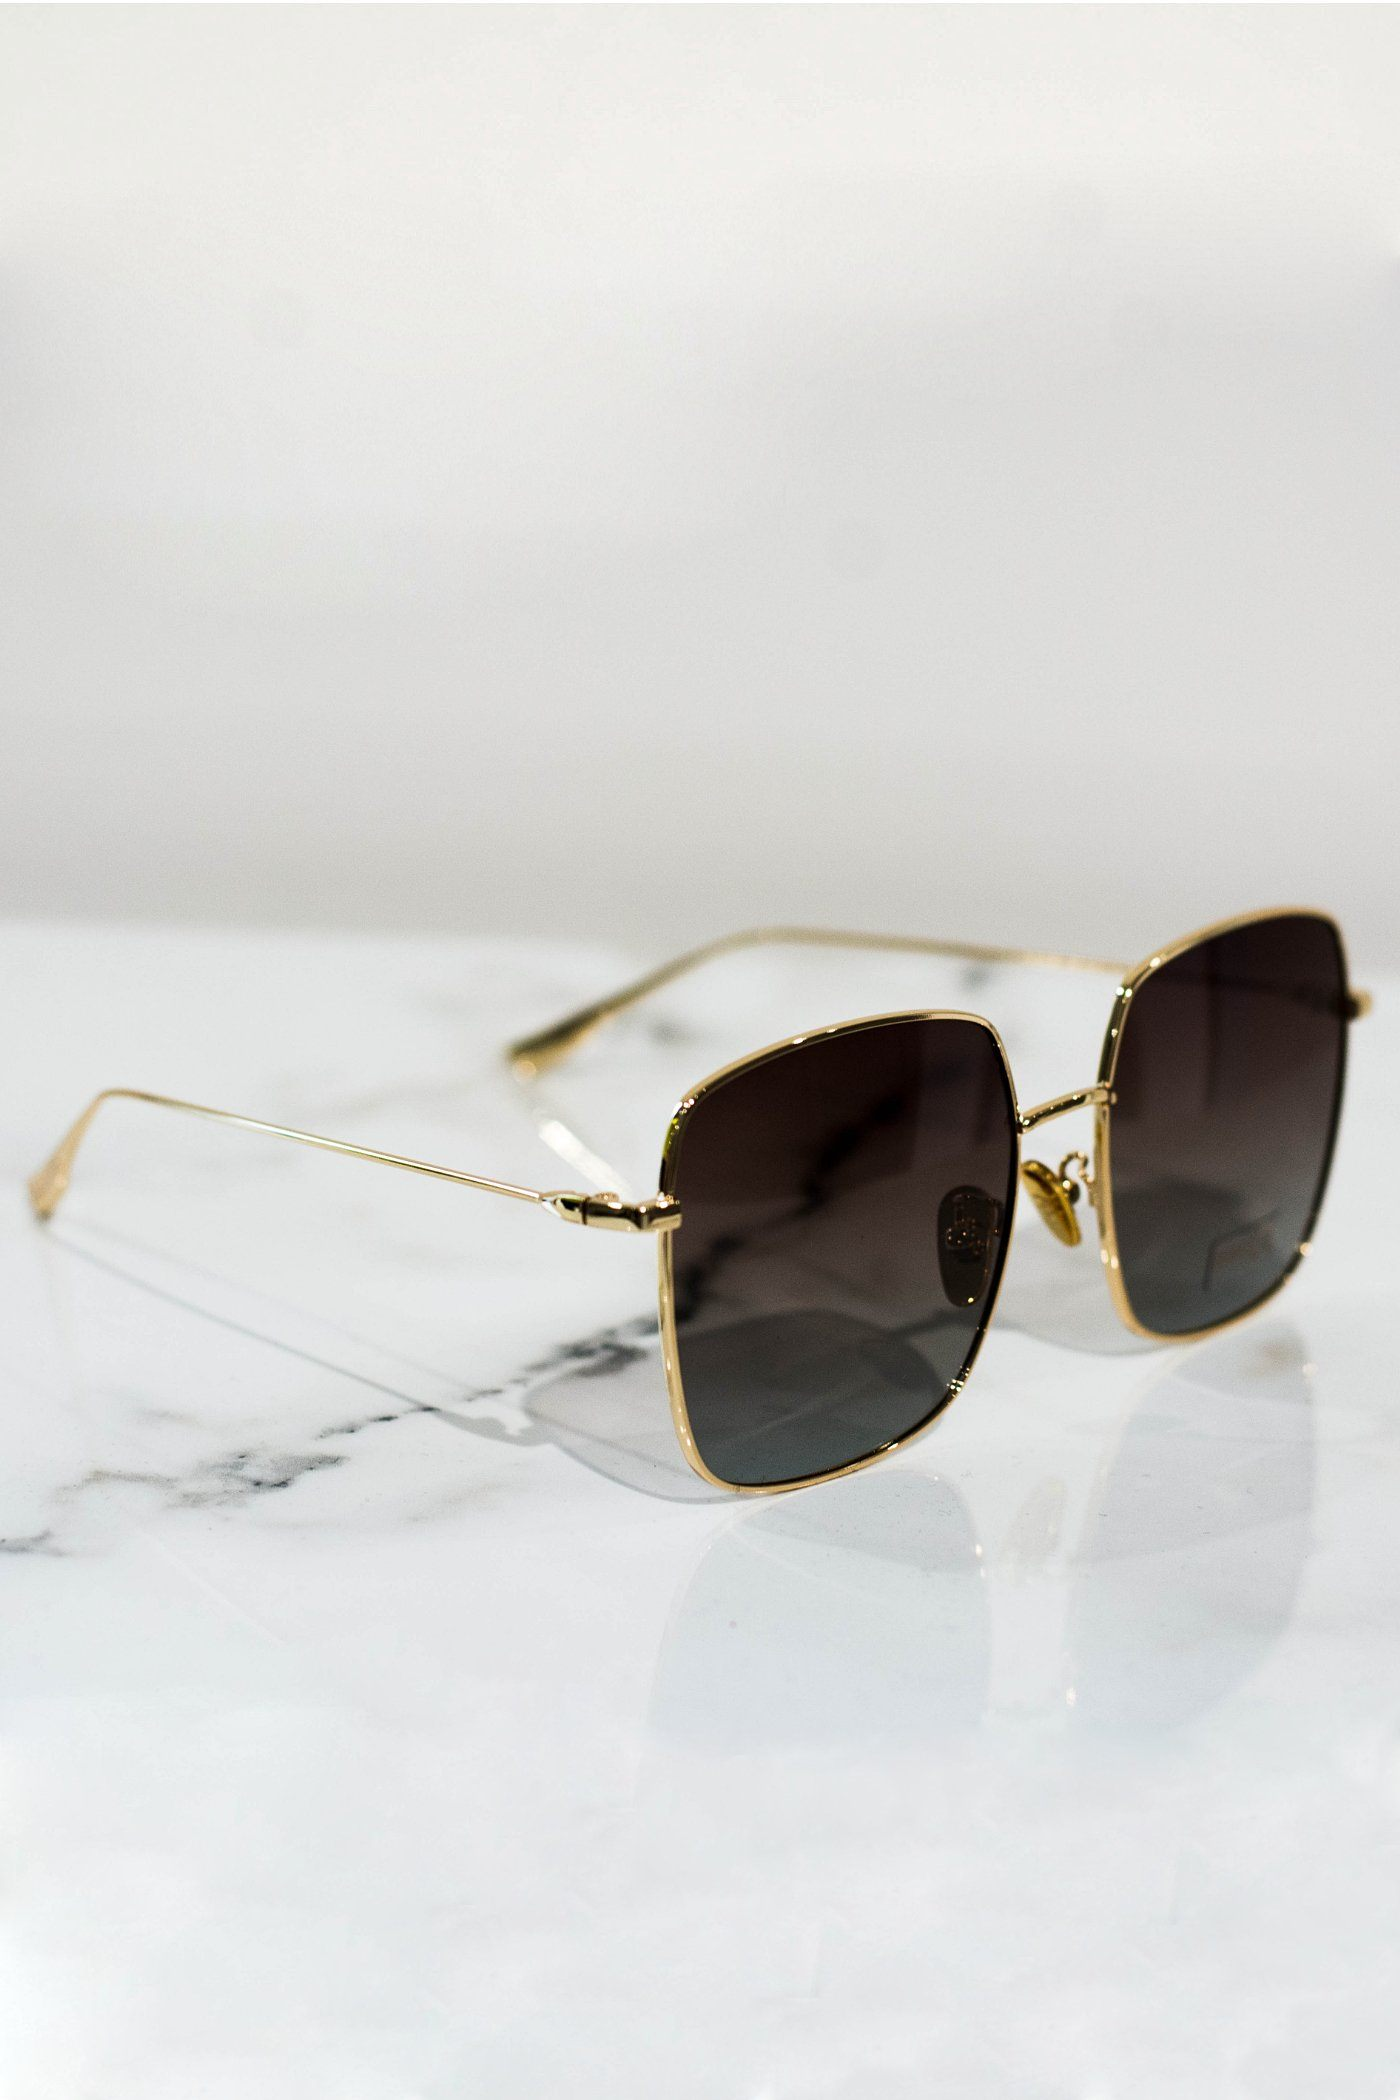 Squared sunglasses gold With brown lens - PEGADOR - Dominate the Hype